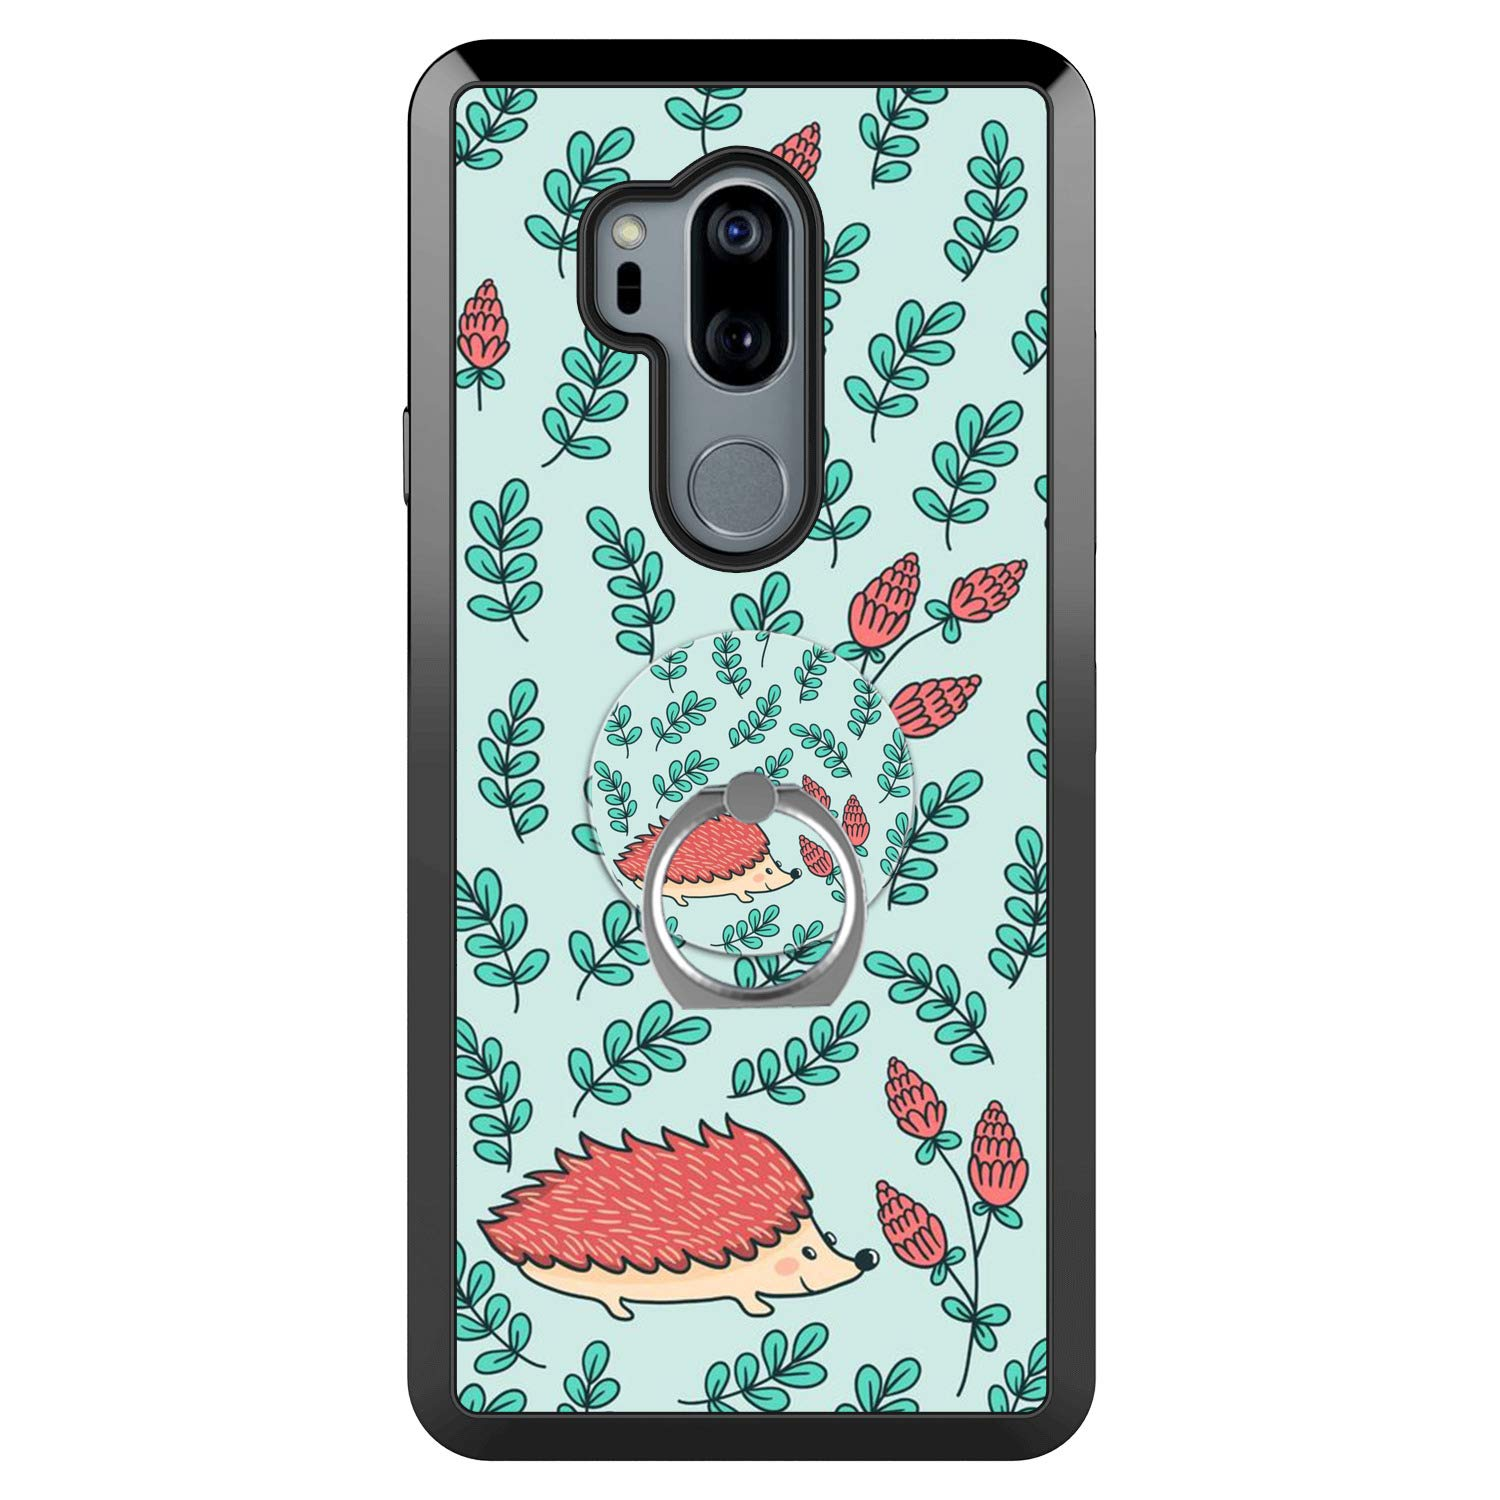 LG G7 ThinQ Case with Ring Holder Stand Multi-Function Cover with Rotating Ring Holder Stand Kickstand Hedgehog Pine Cone Case for LG G7 ThinQ